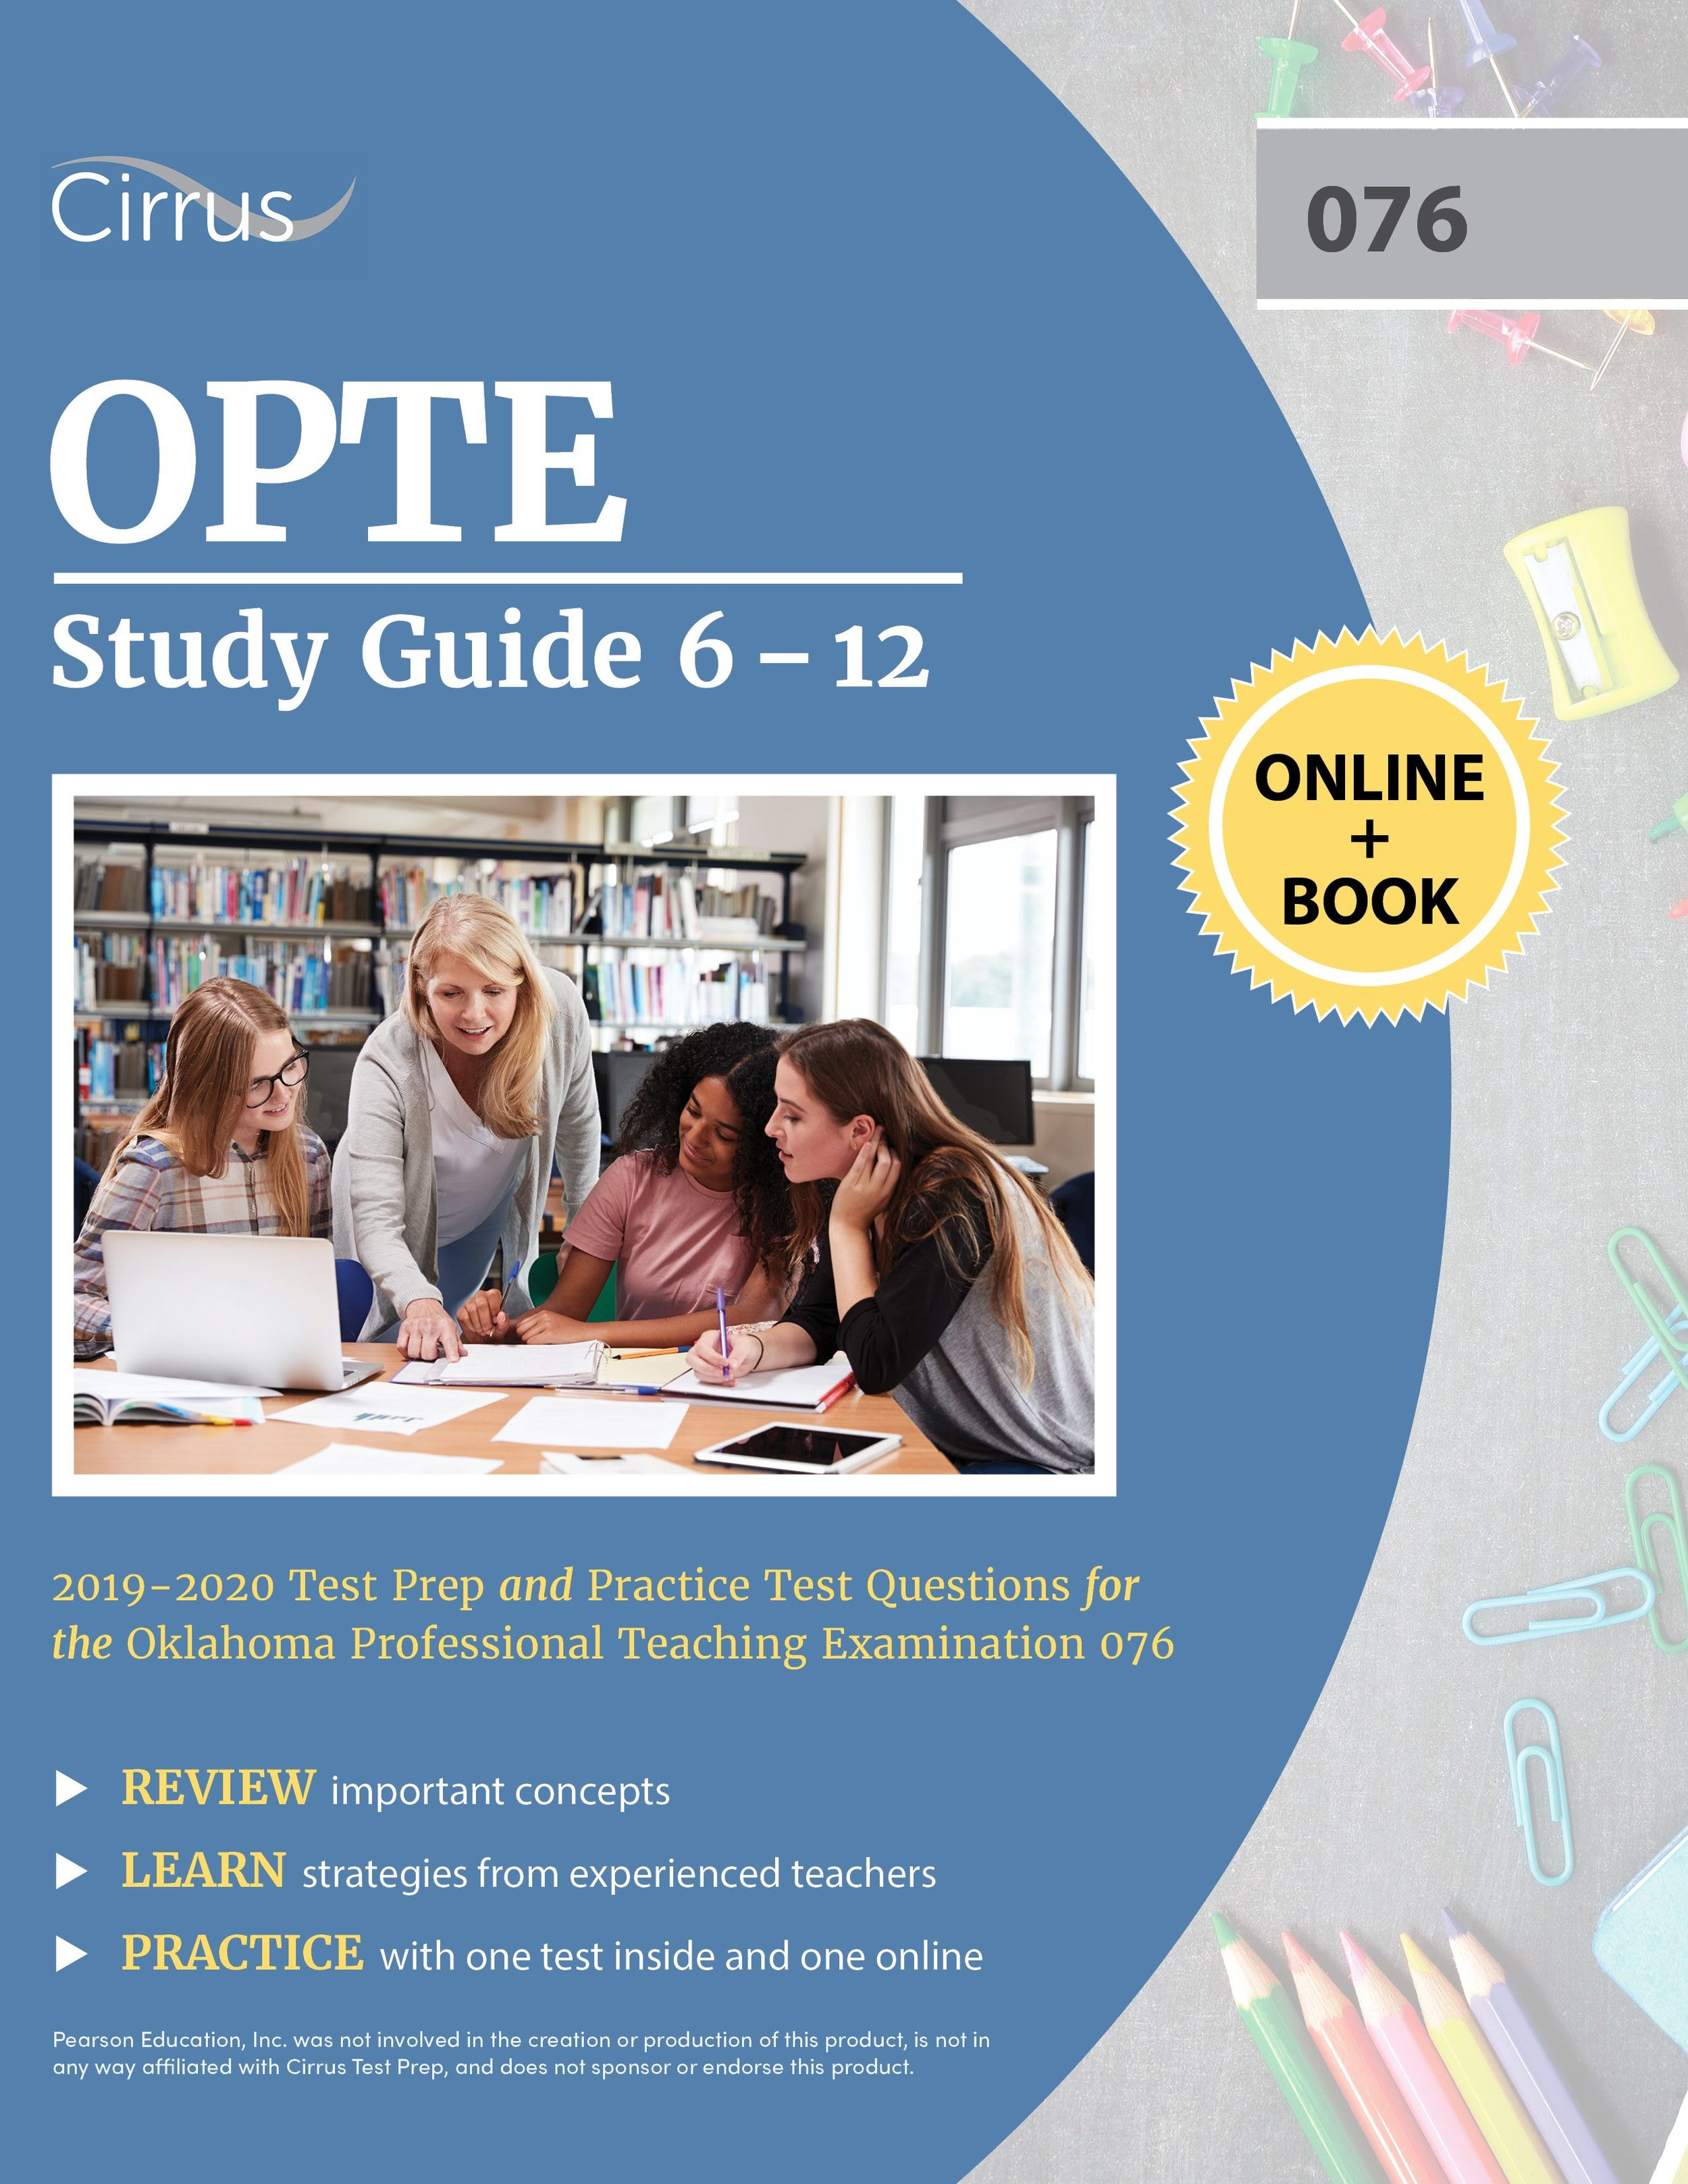 OPTE Study Guide 6 – 12 (076) 2019 – 2020